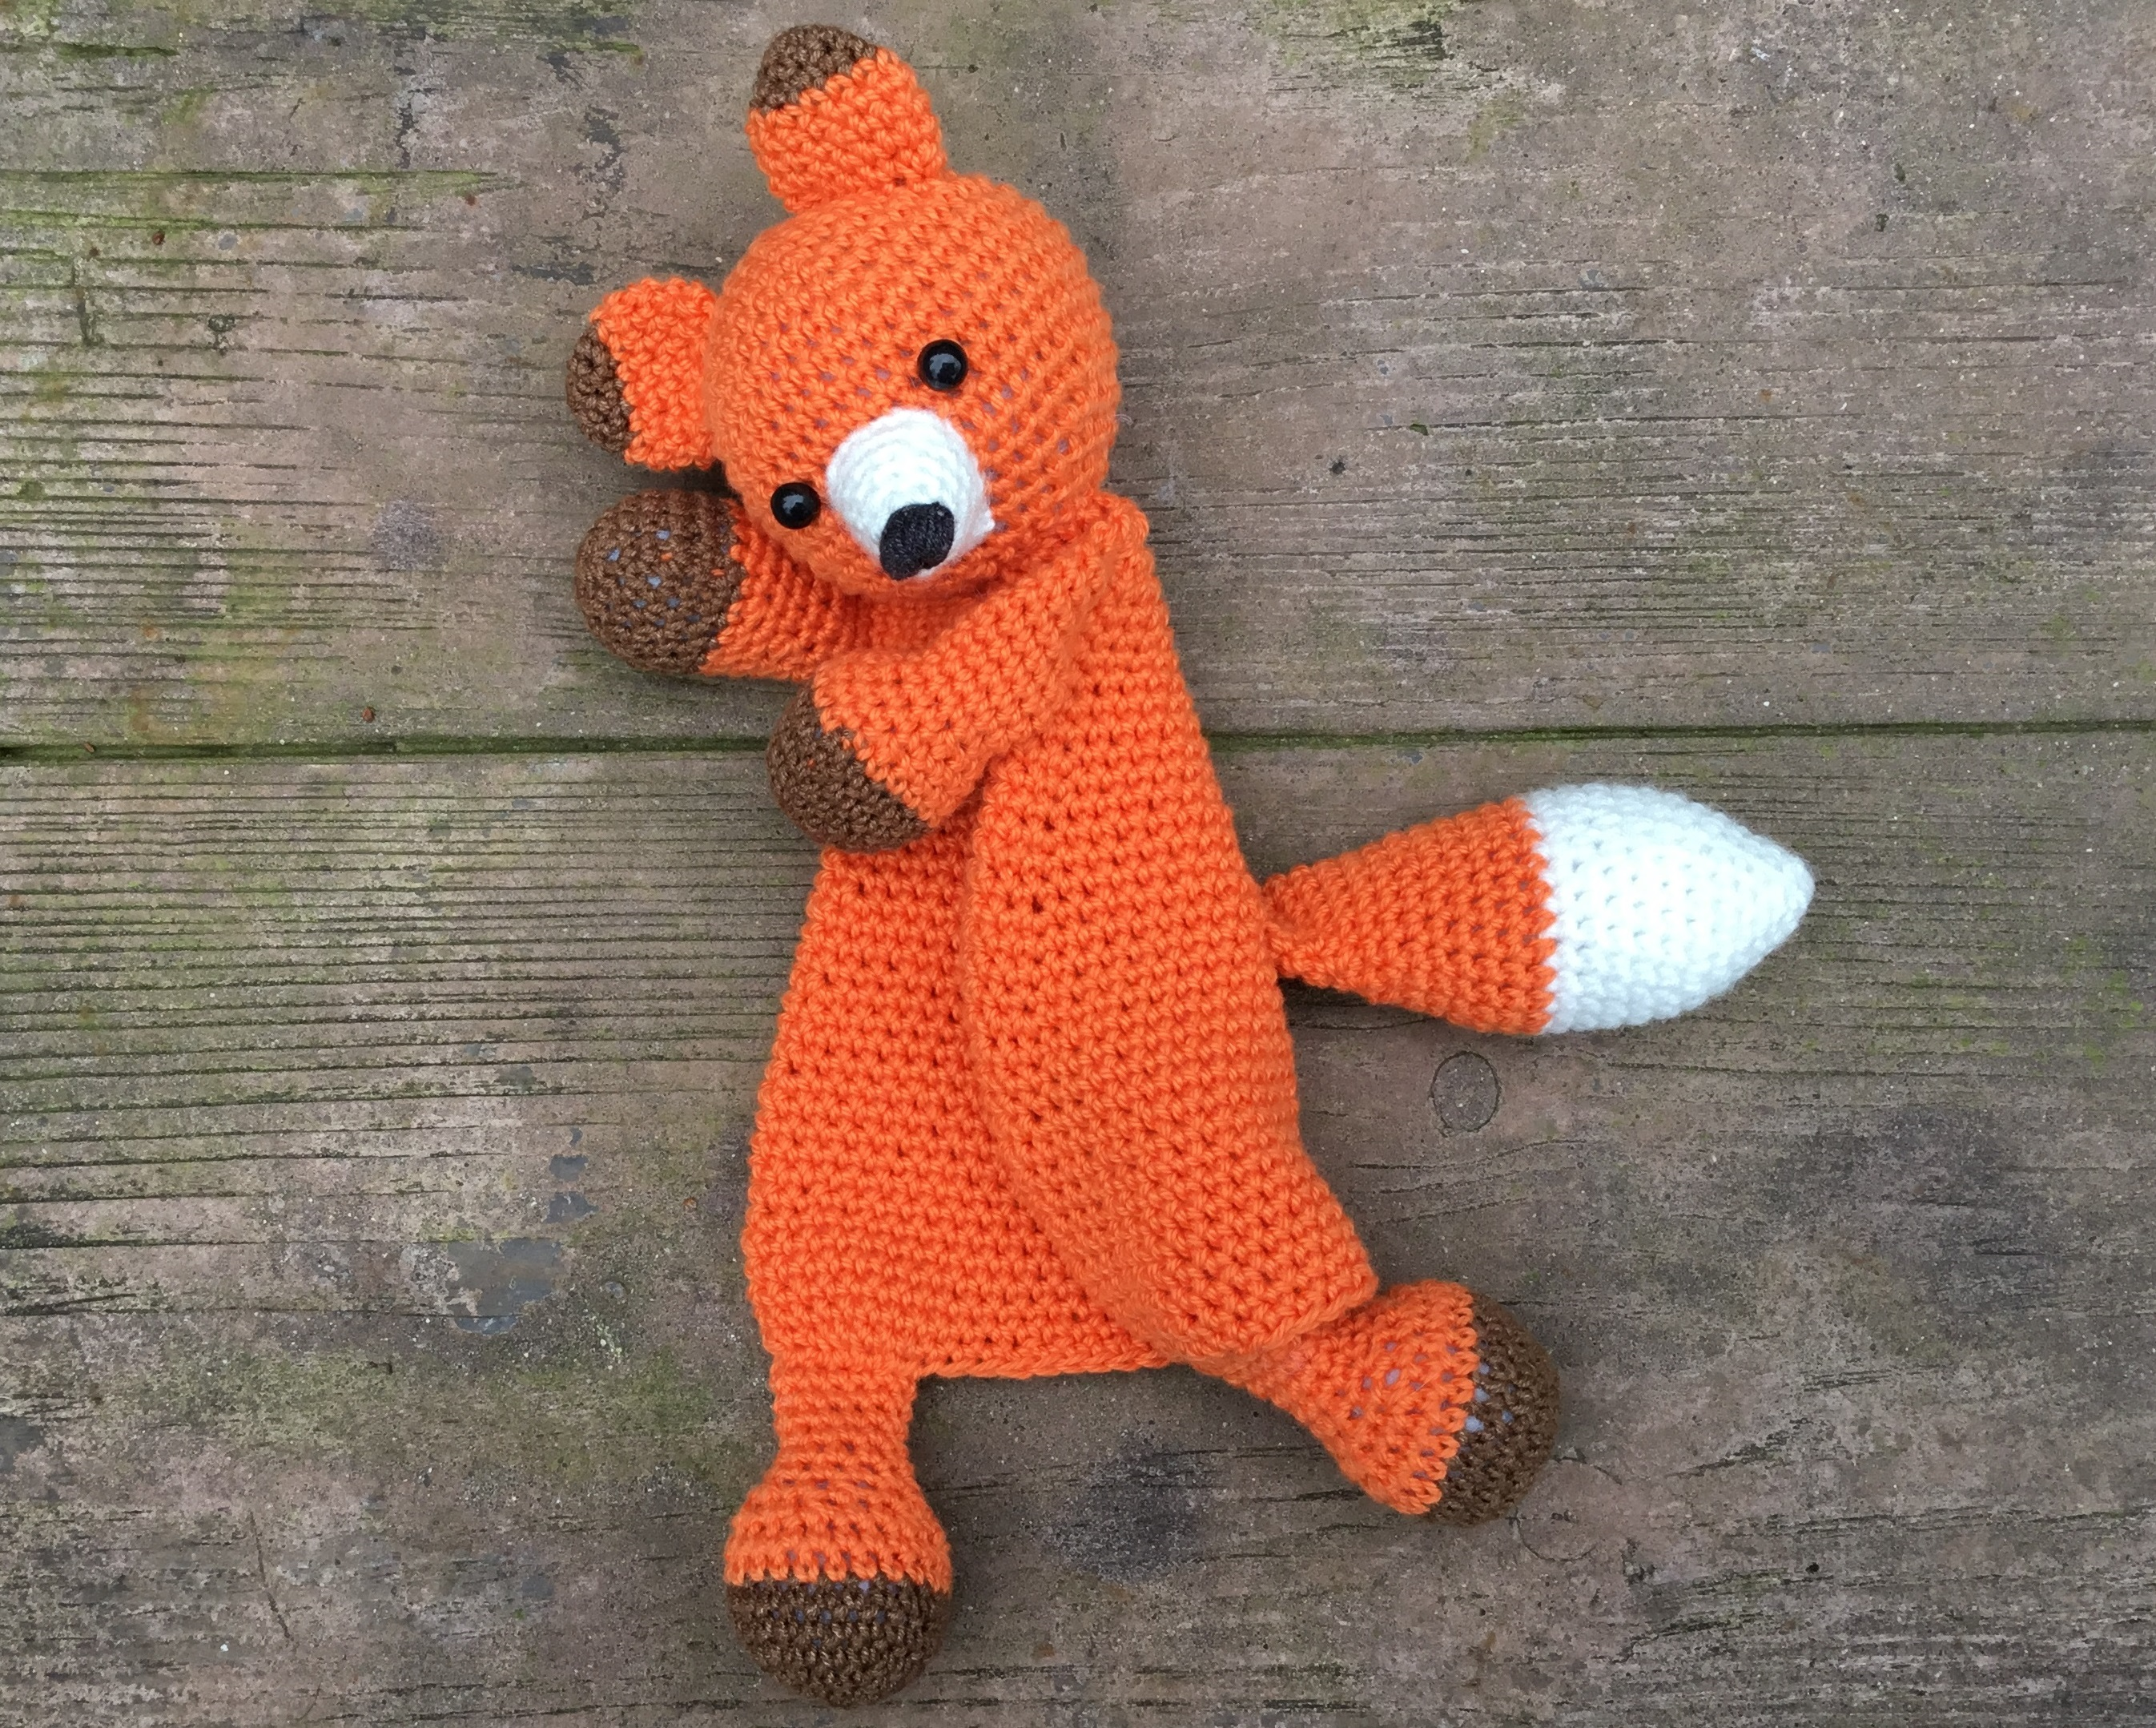 The sleepy fox amigurumi pattern | Amigurumi fox pattern, Crochet ... | 2157x2692